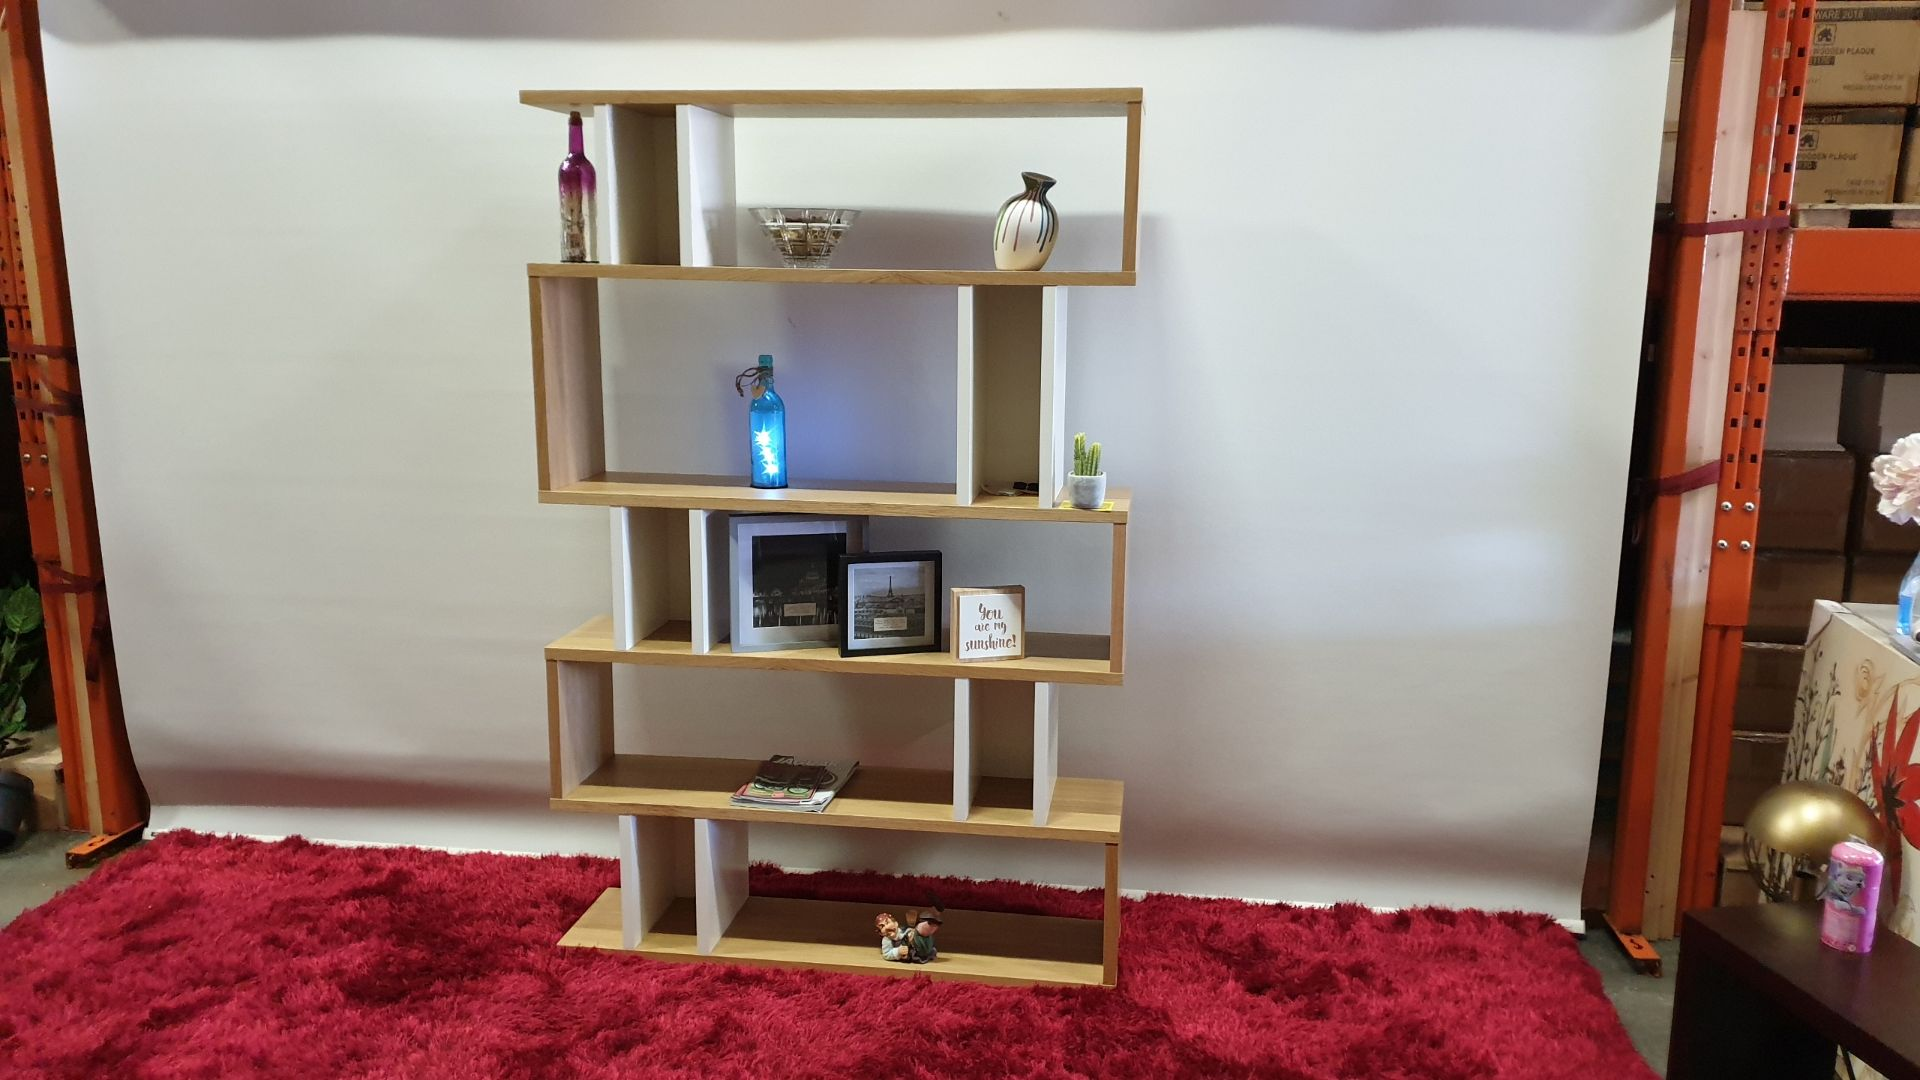 Lot 230 - BRAND NEW CONTENT BY TERRANCE CONRAN COUNTER BALANCE TALL SHELVING COLOUR OAK / WHITE SIZE H1800 X